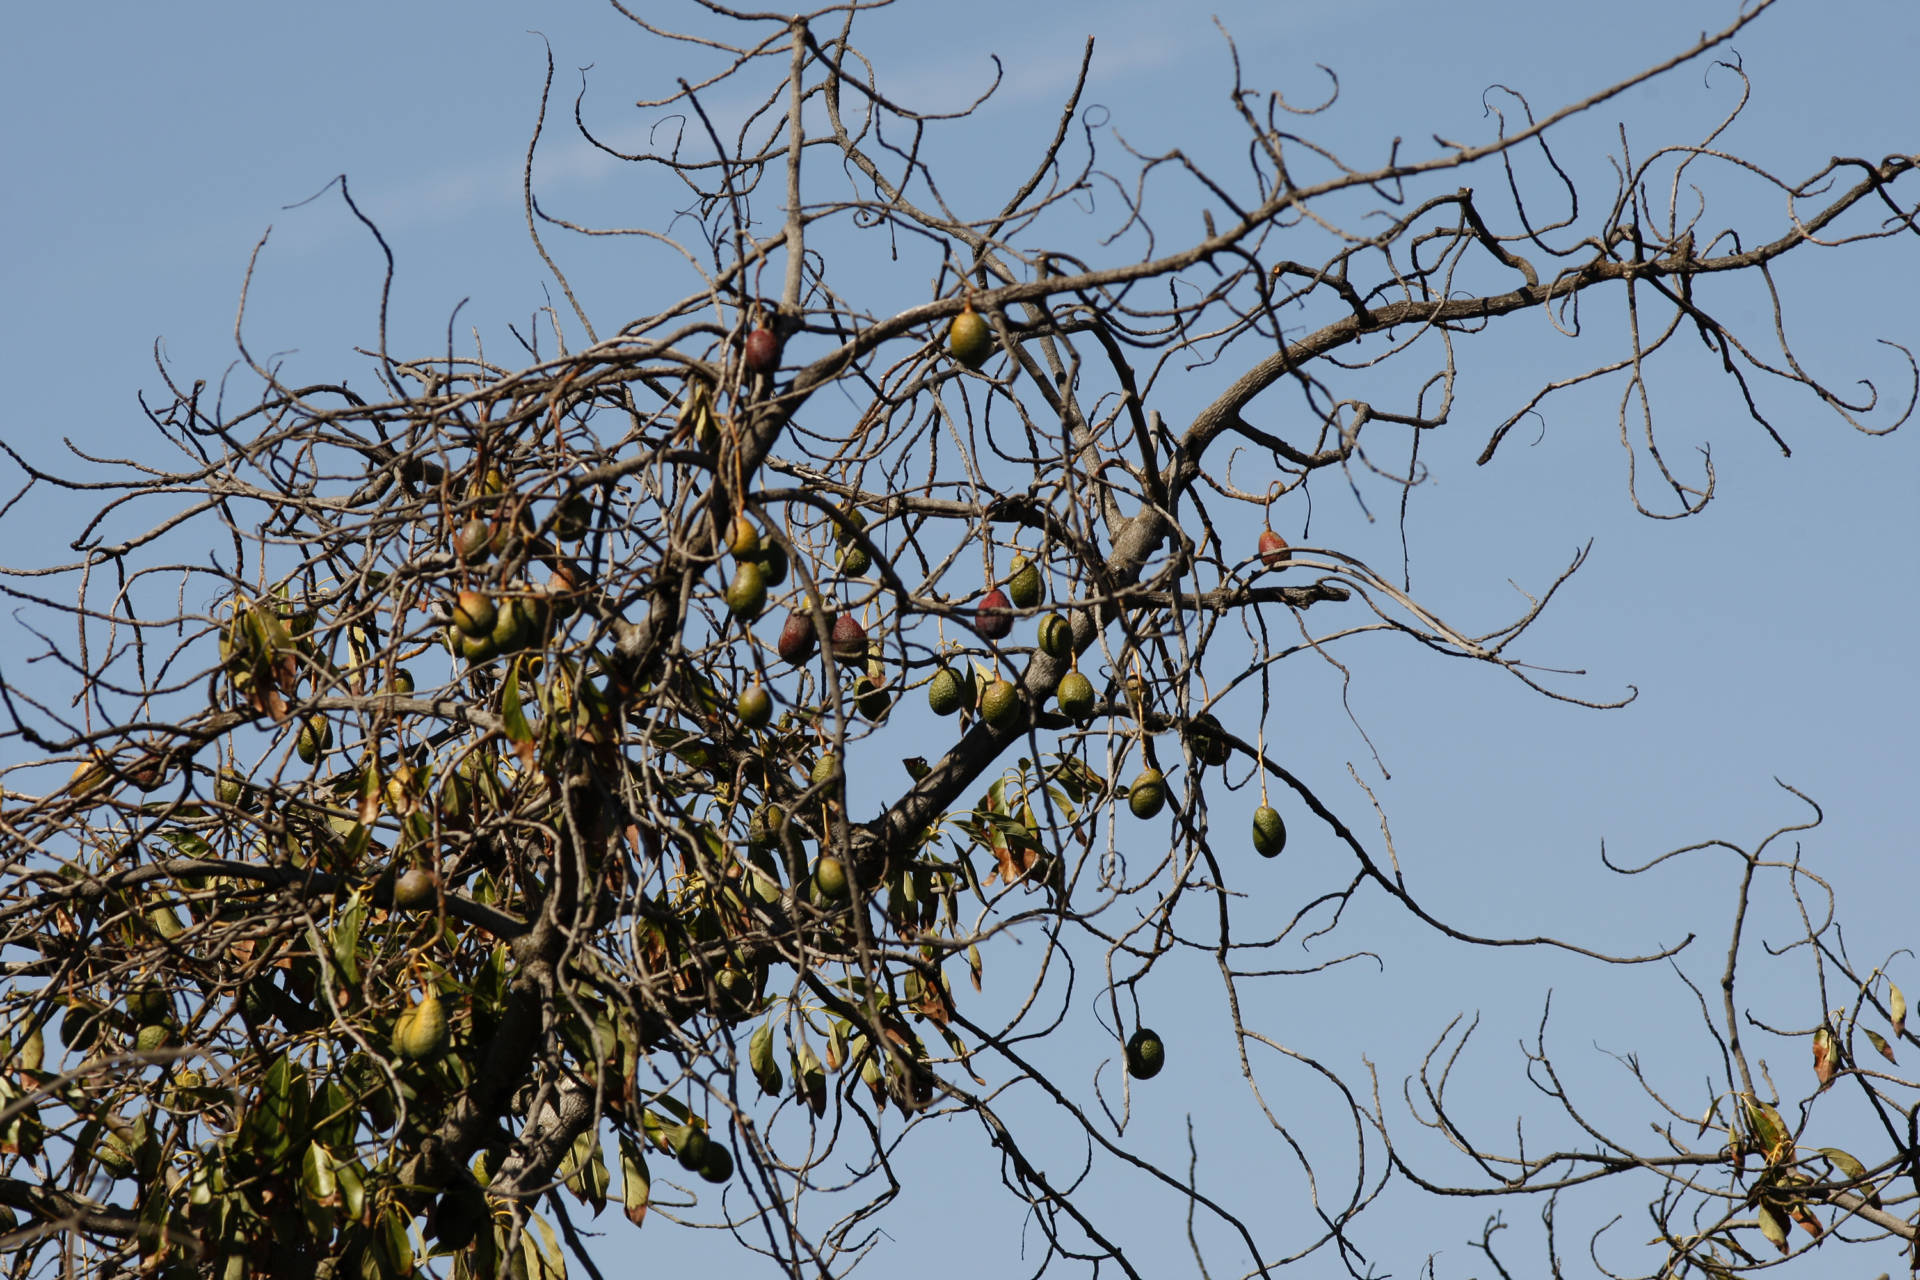 Avocados hang from a dying tree on March 5, 2014 near Valley Center, California.  David McNew/Getty Images